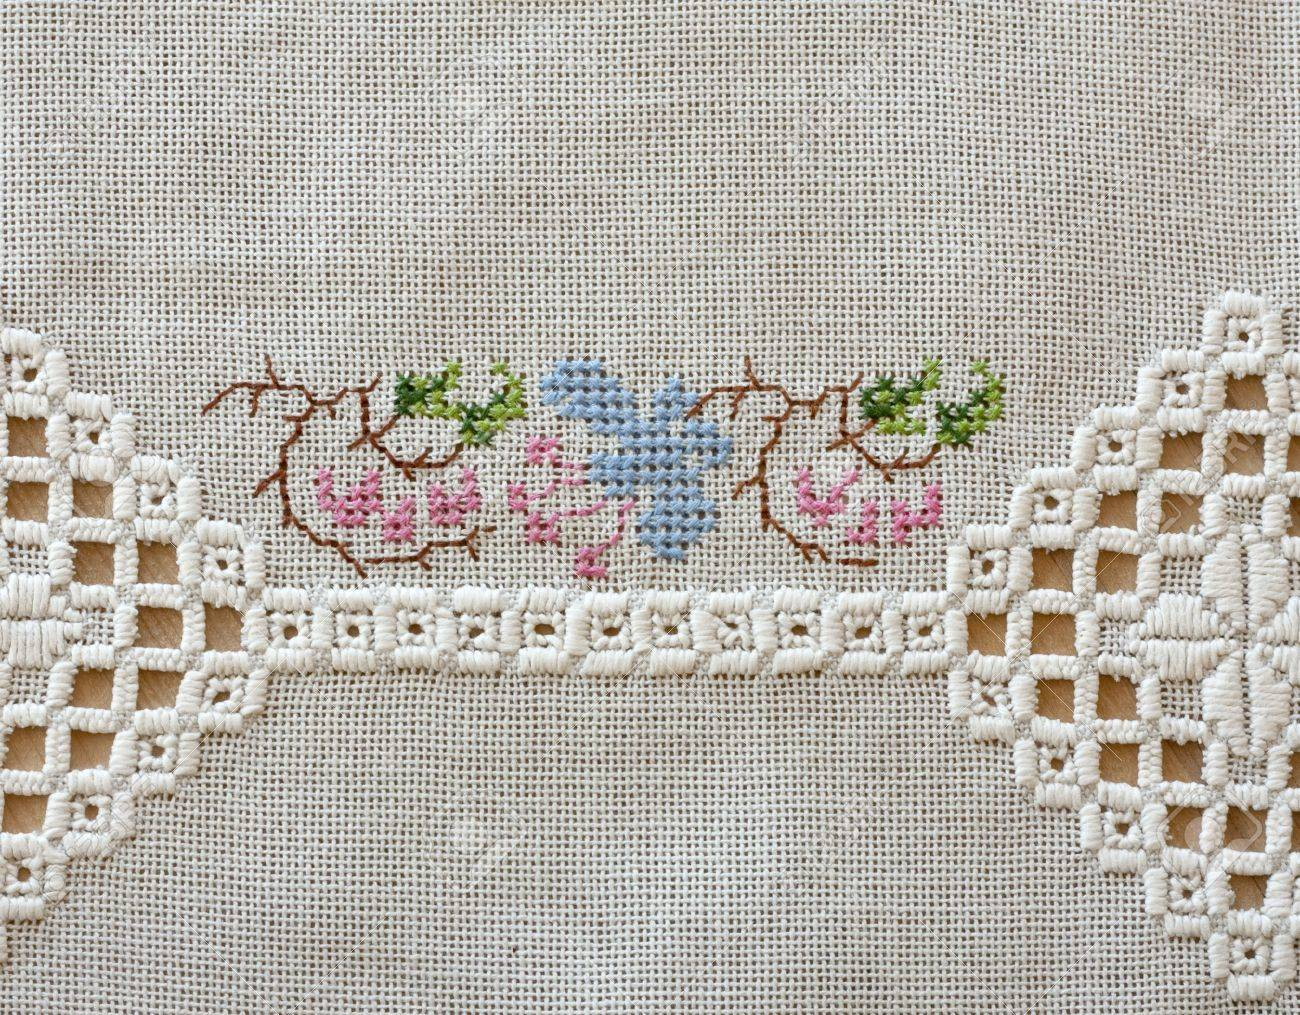 Embroidered Cloth On Wooden Table With Two Different Types Of